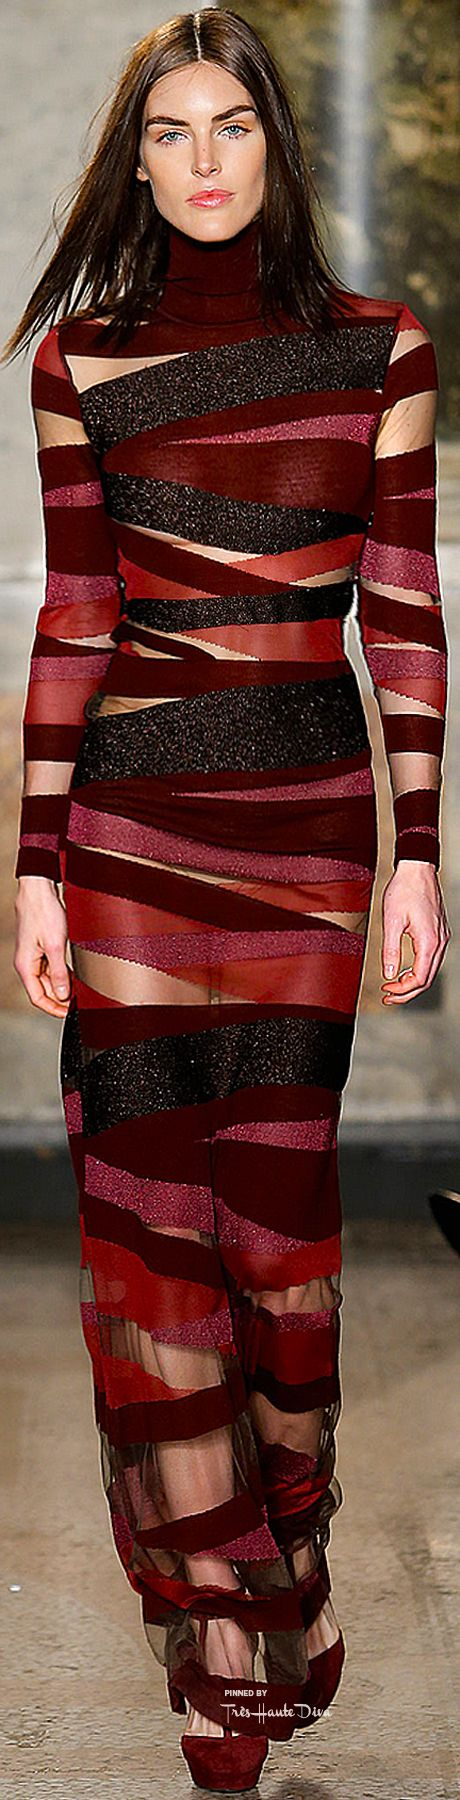 New York Millionairess | Emilio Pucci Fall 2015                                                                                                                                                                                 More